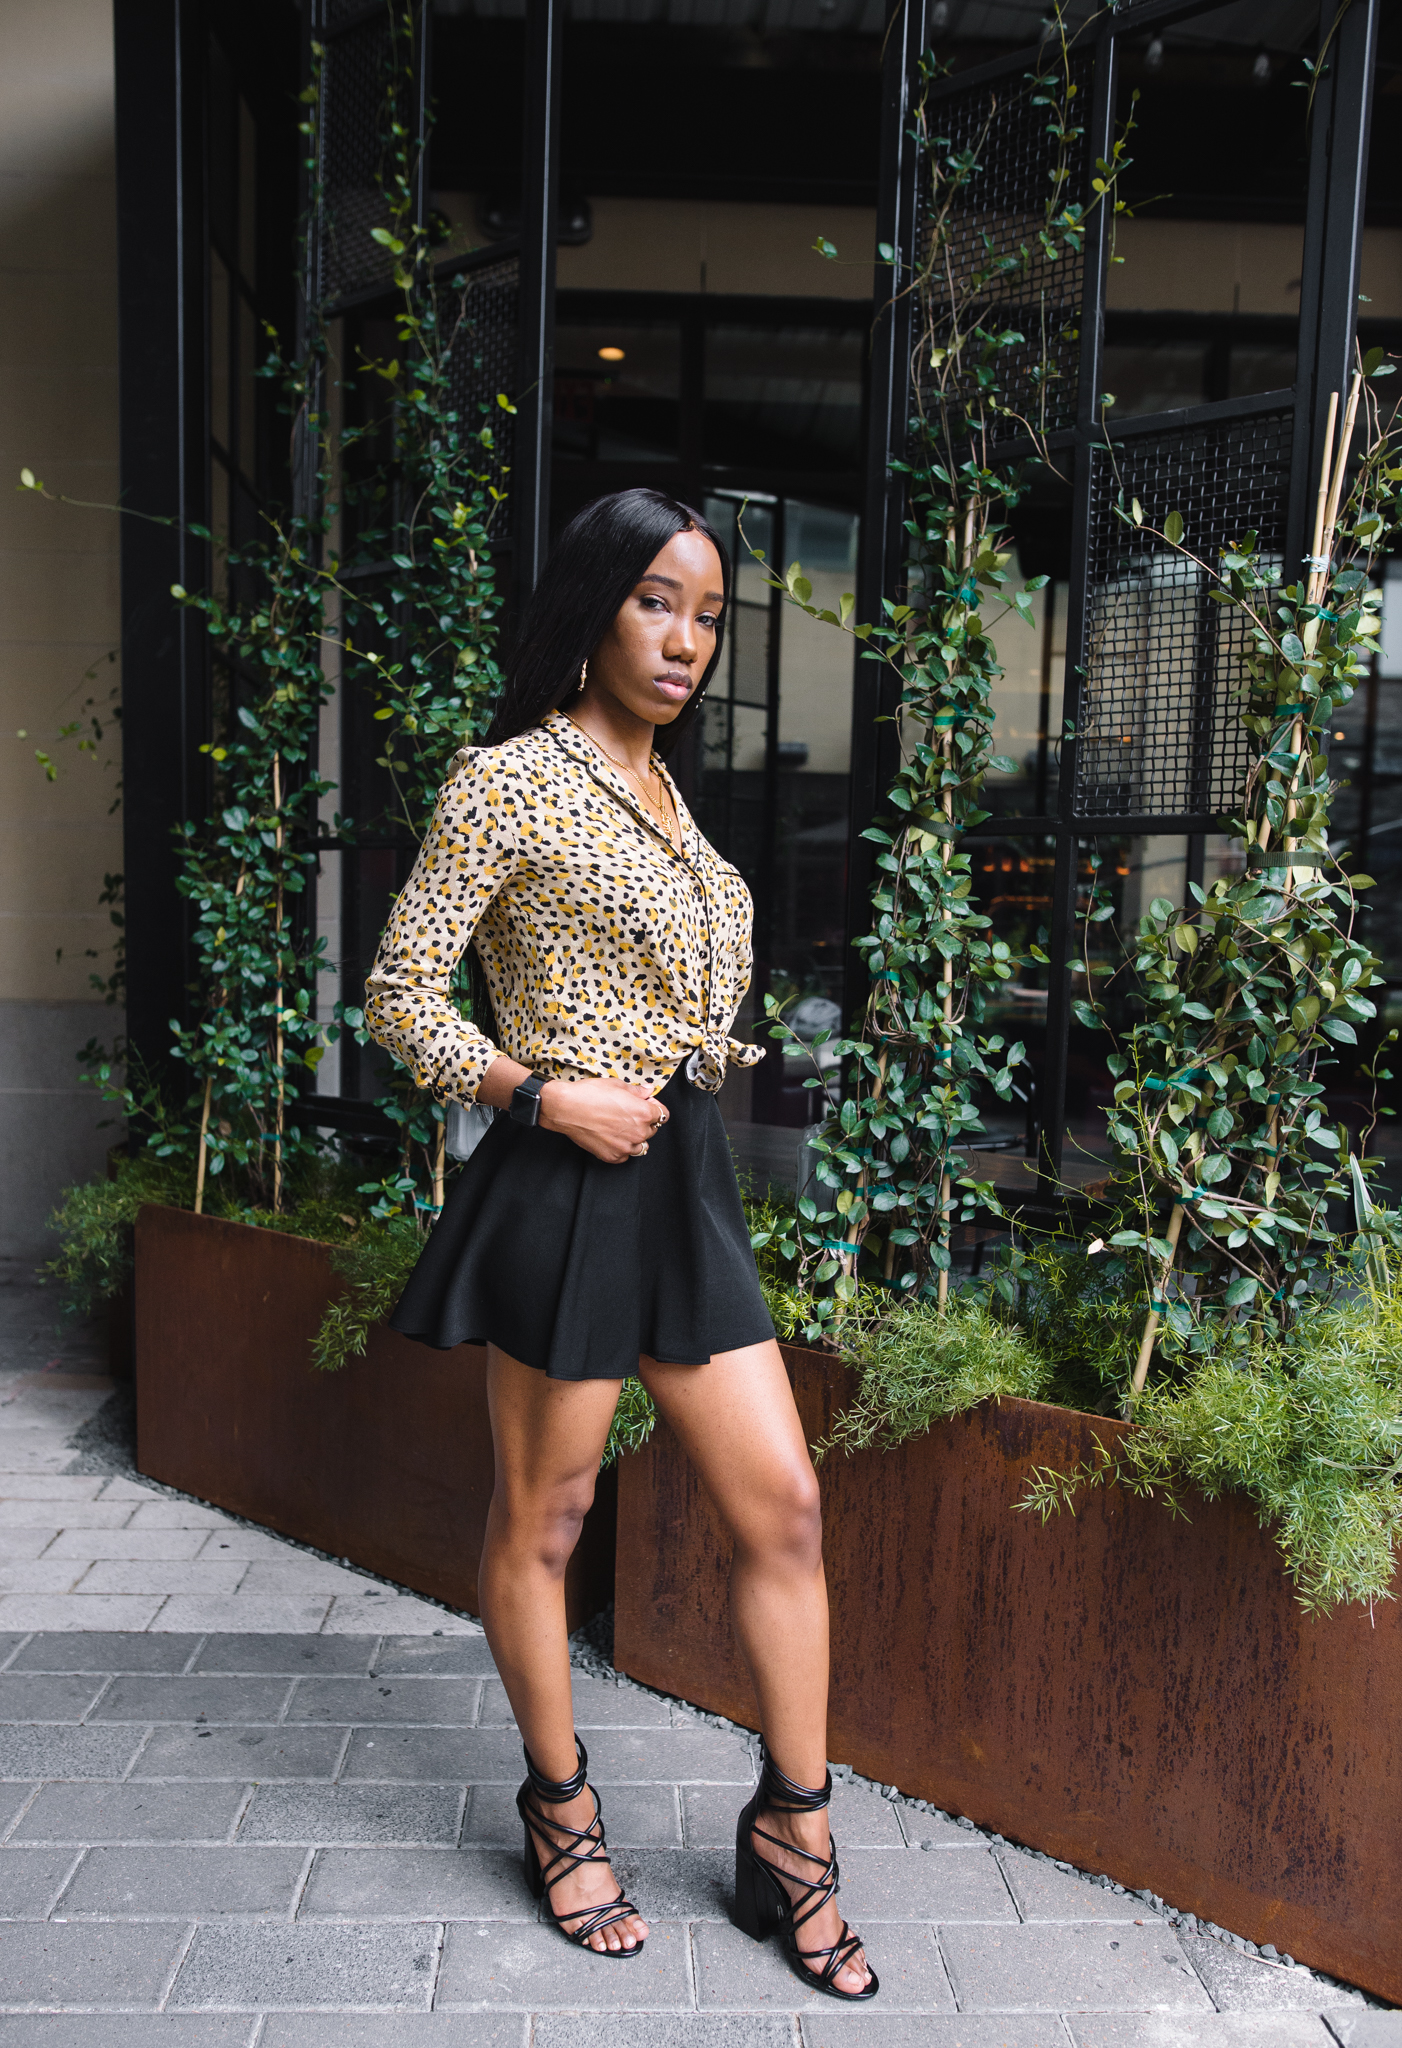 how to dress broad shoulders - broad shoulders women - how to make your shoulders smaller - animal print - leopard print - bylolitajewelry - missguided - zara - forever 21 - fall fashion trends - fall style - fall fashion colors - outfit inspiration - instagram baddie - black model - autumn fashion